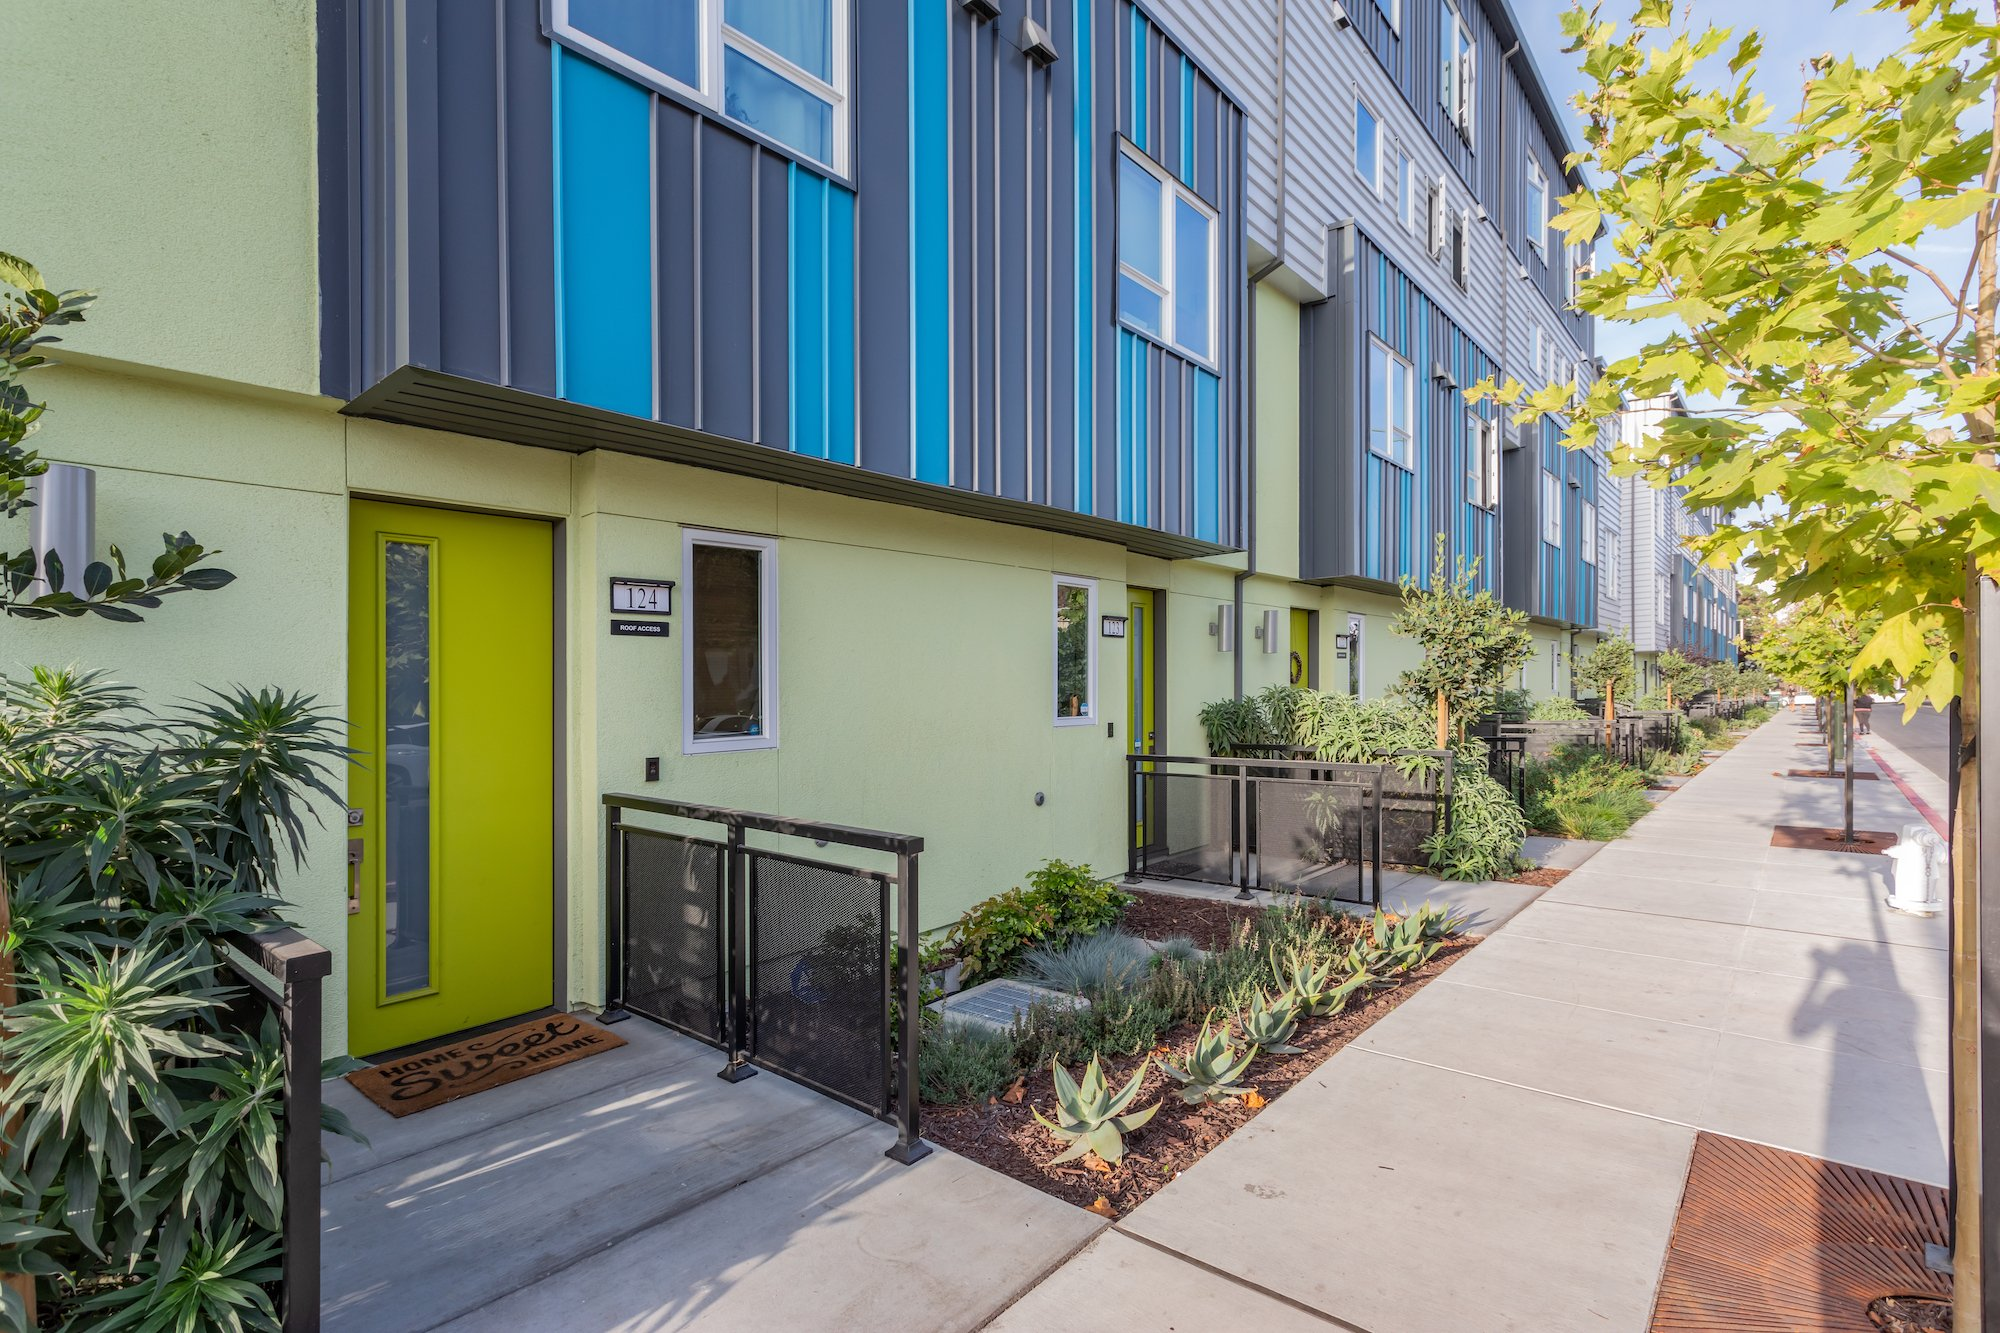 41st Townhomes-Oakland, California-Lowney Architecture-4